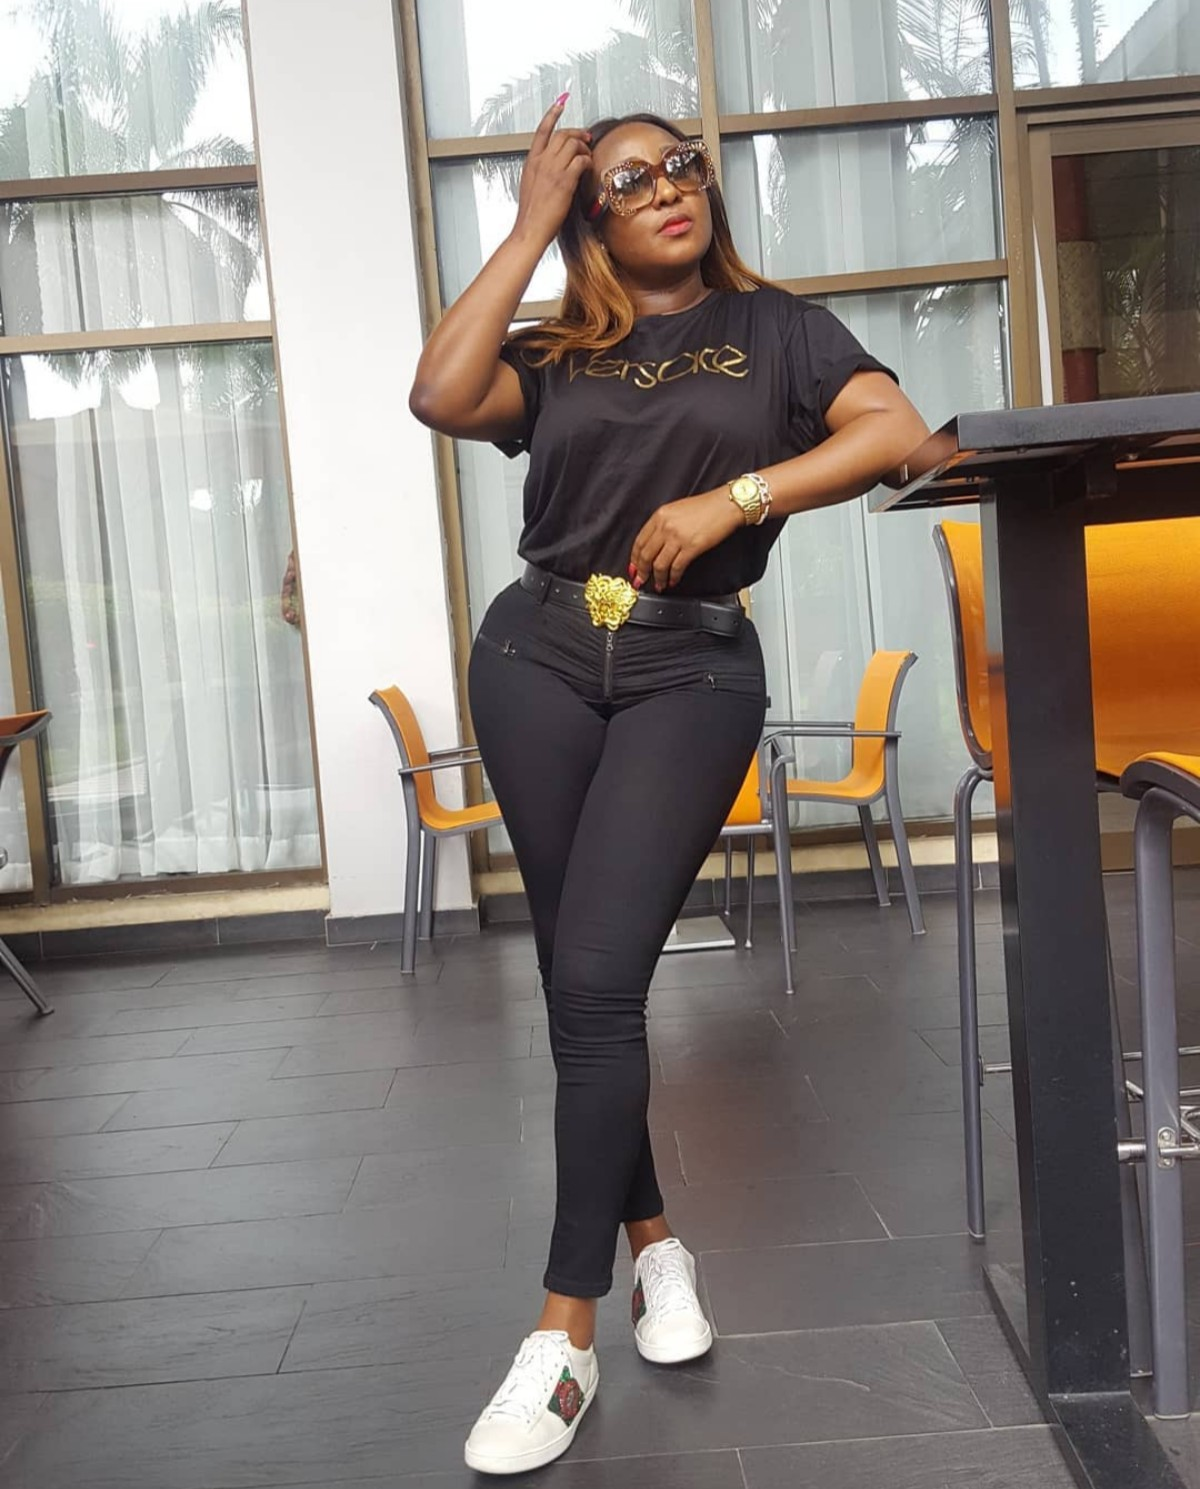 Ini Edo With Bare Face And Lipstick